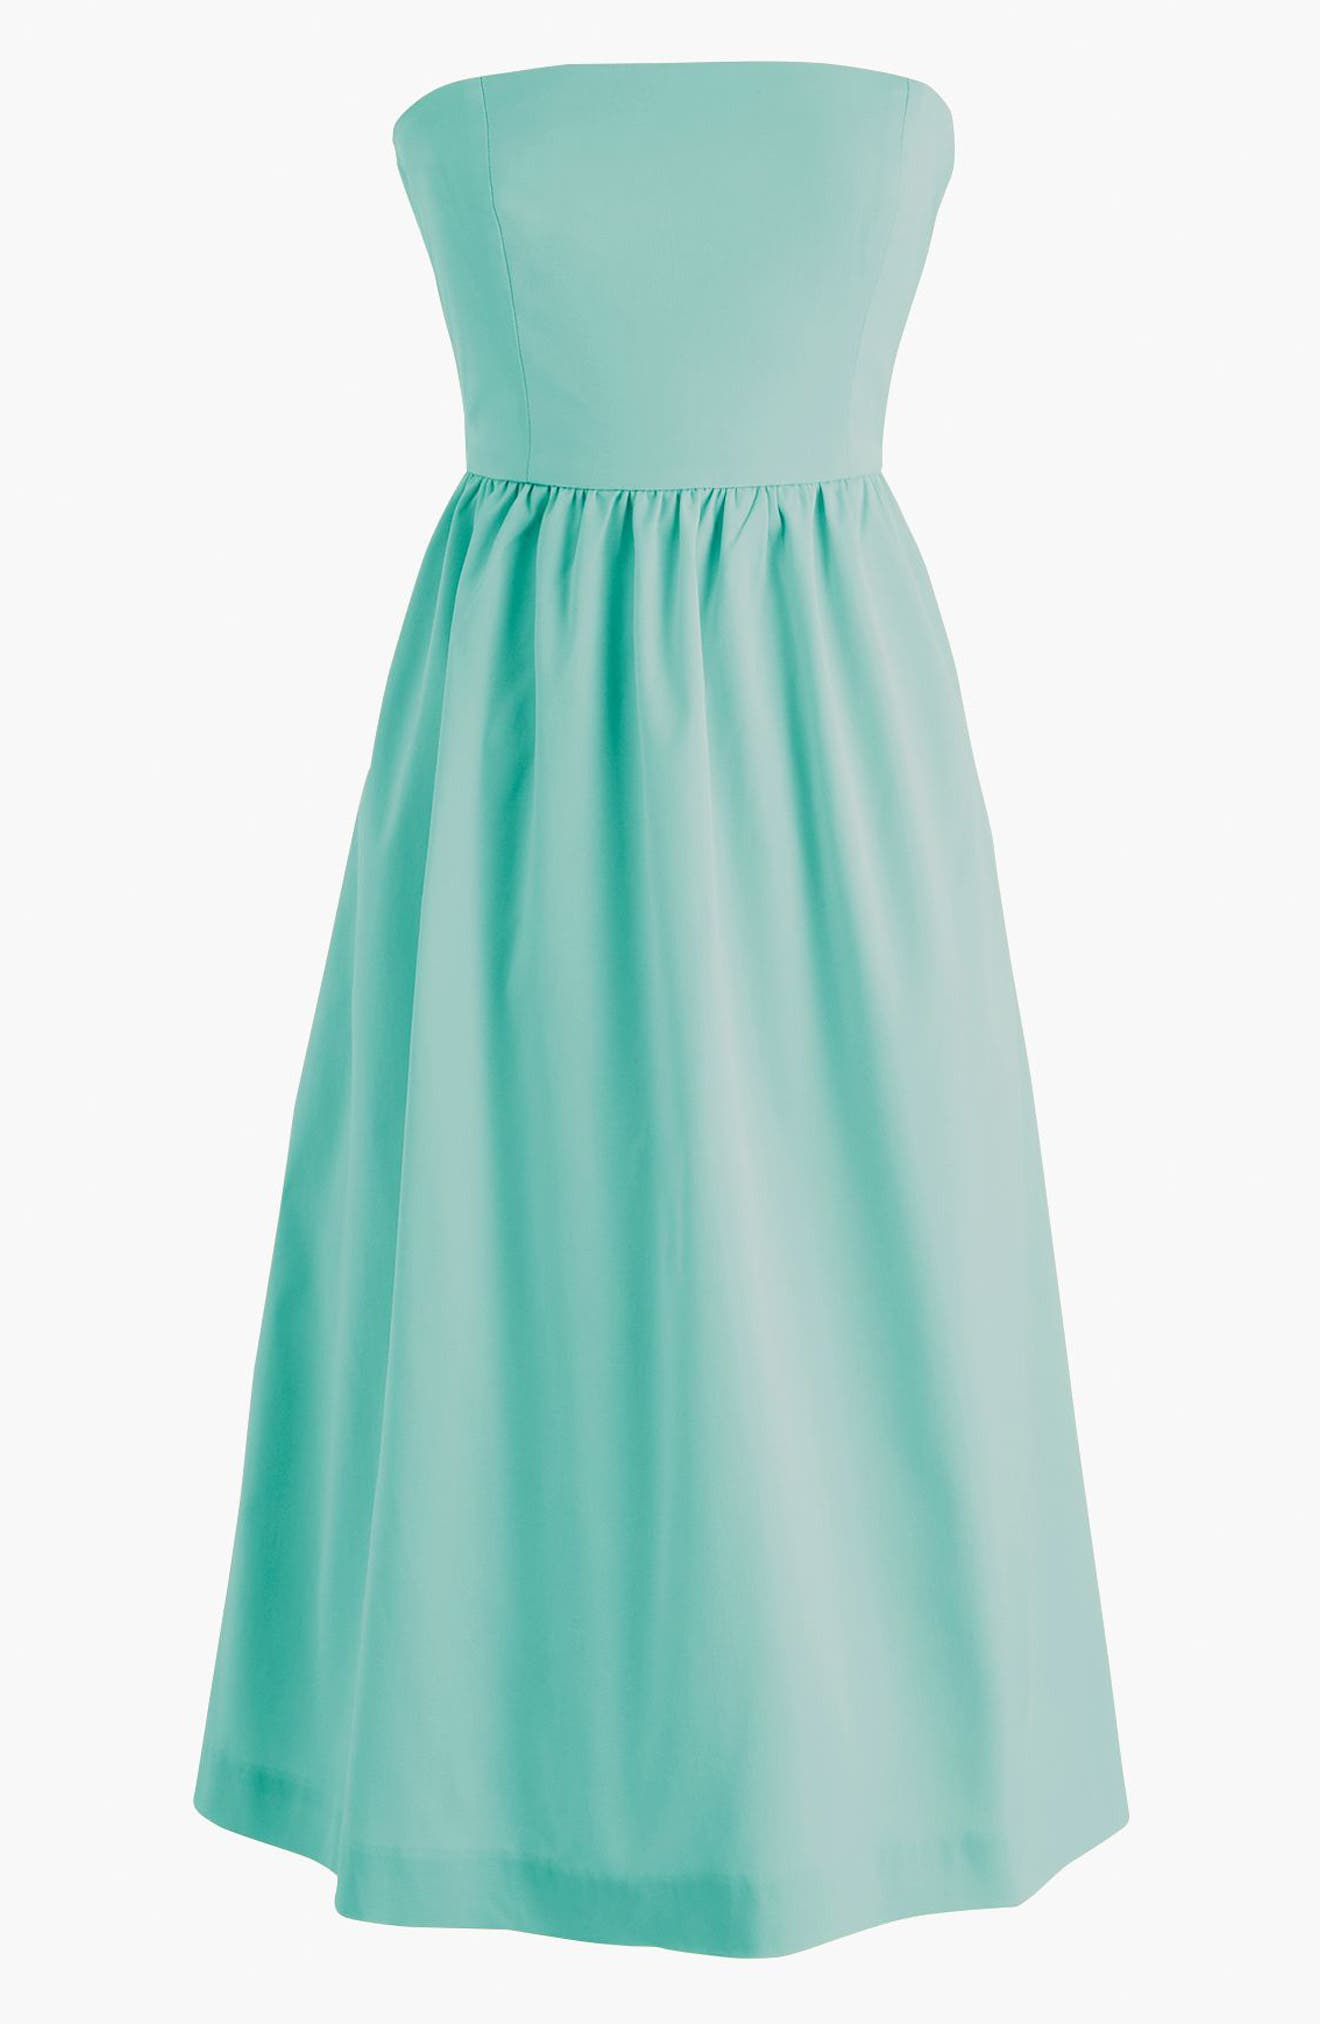 Strapless Fit & Flare Dress,                             Main thumbnail 1, color,                             400